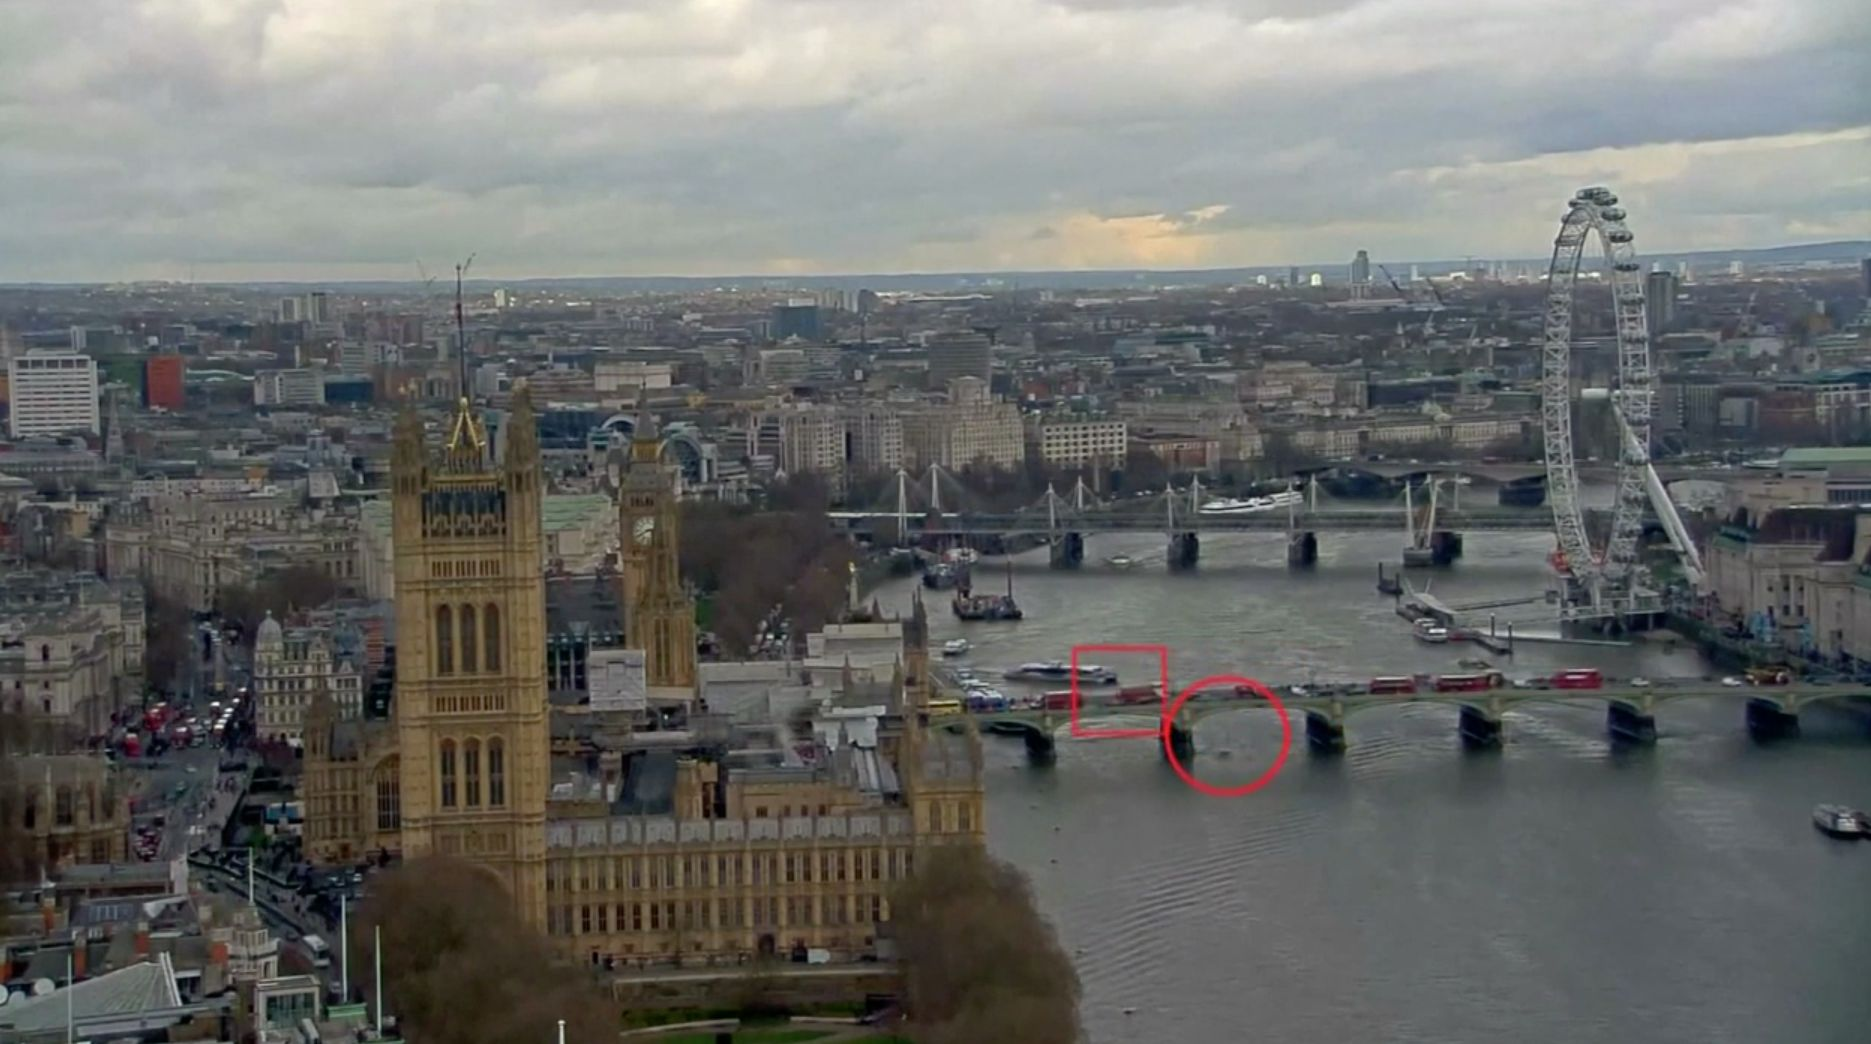 Terrifying Moment Woman Falls From Westminster Bridge Into Thames Caught On